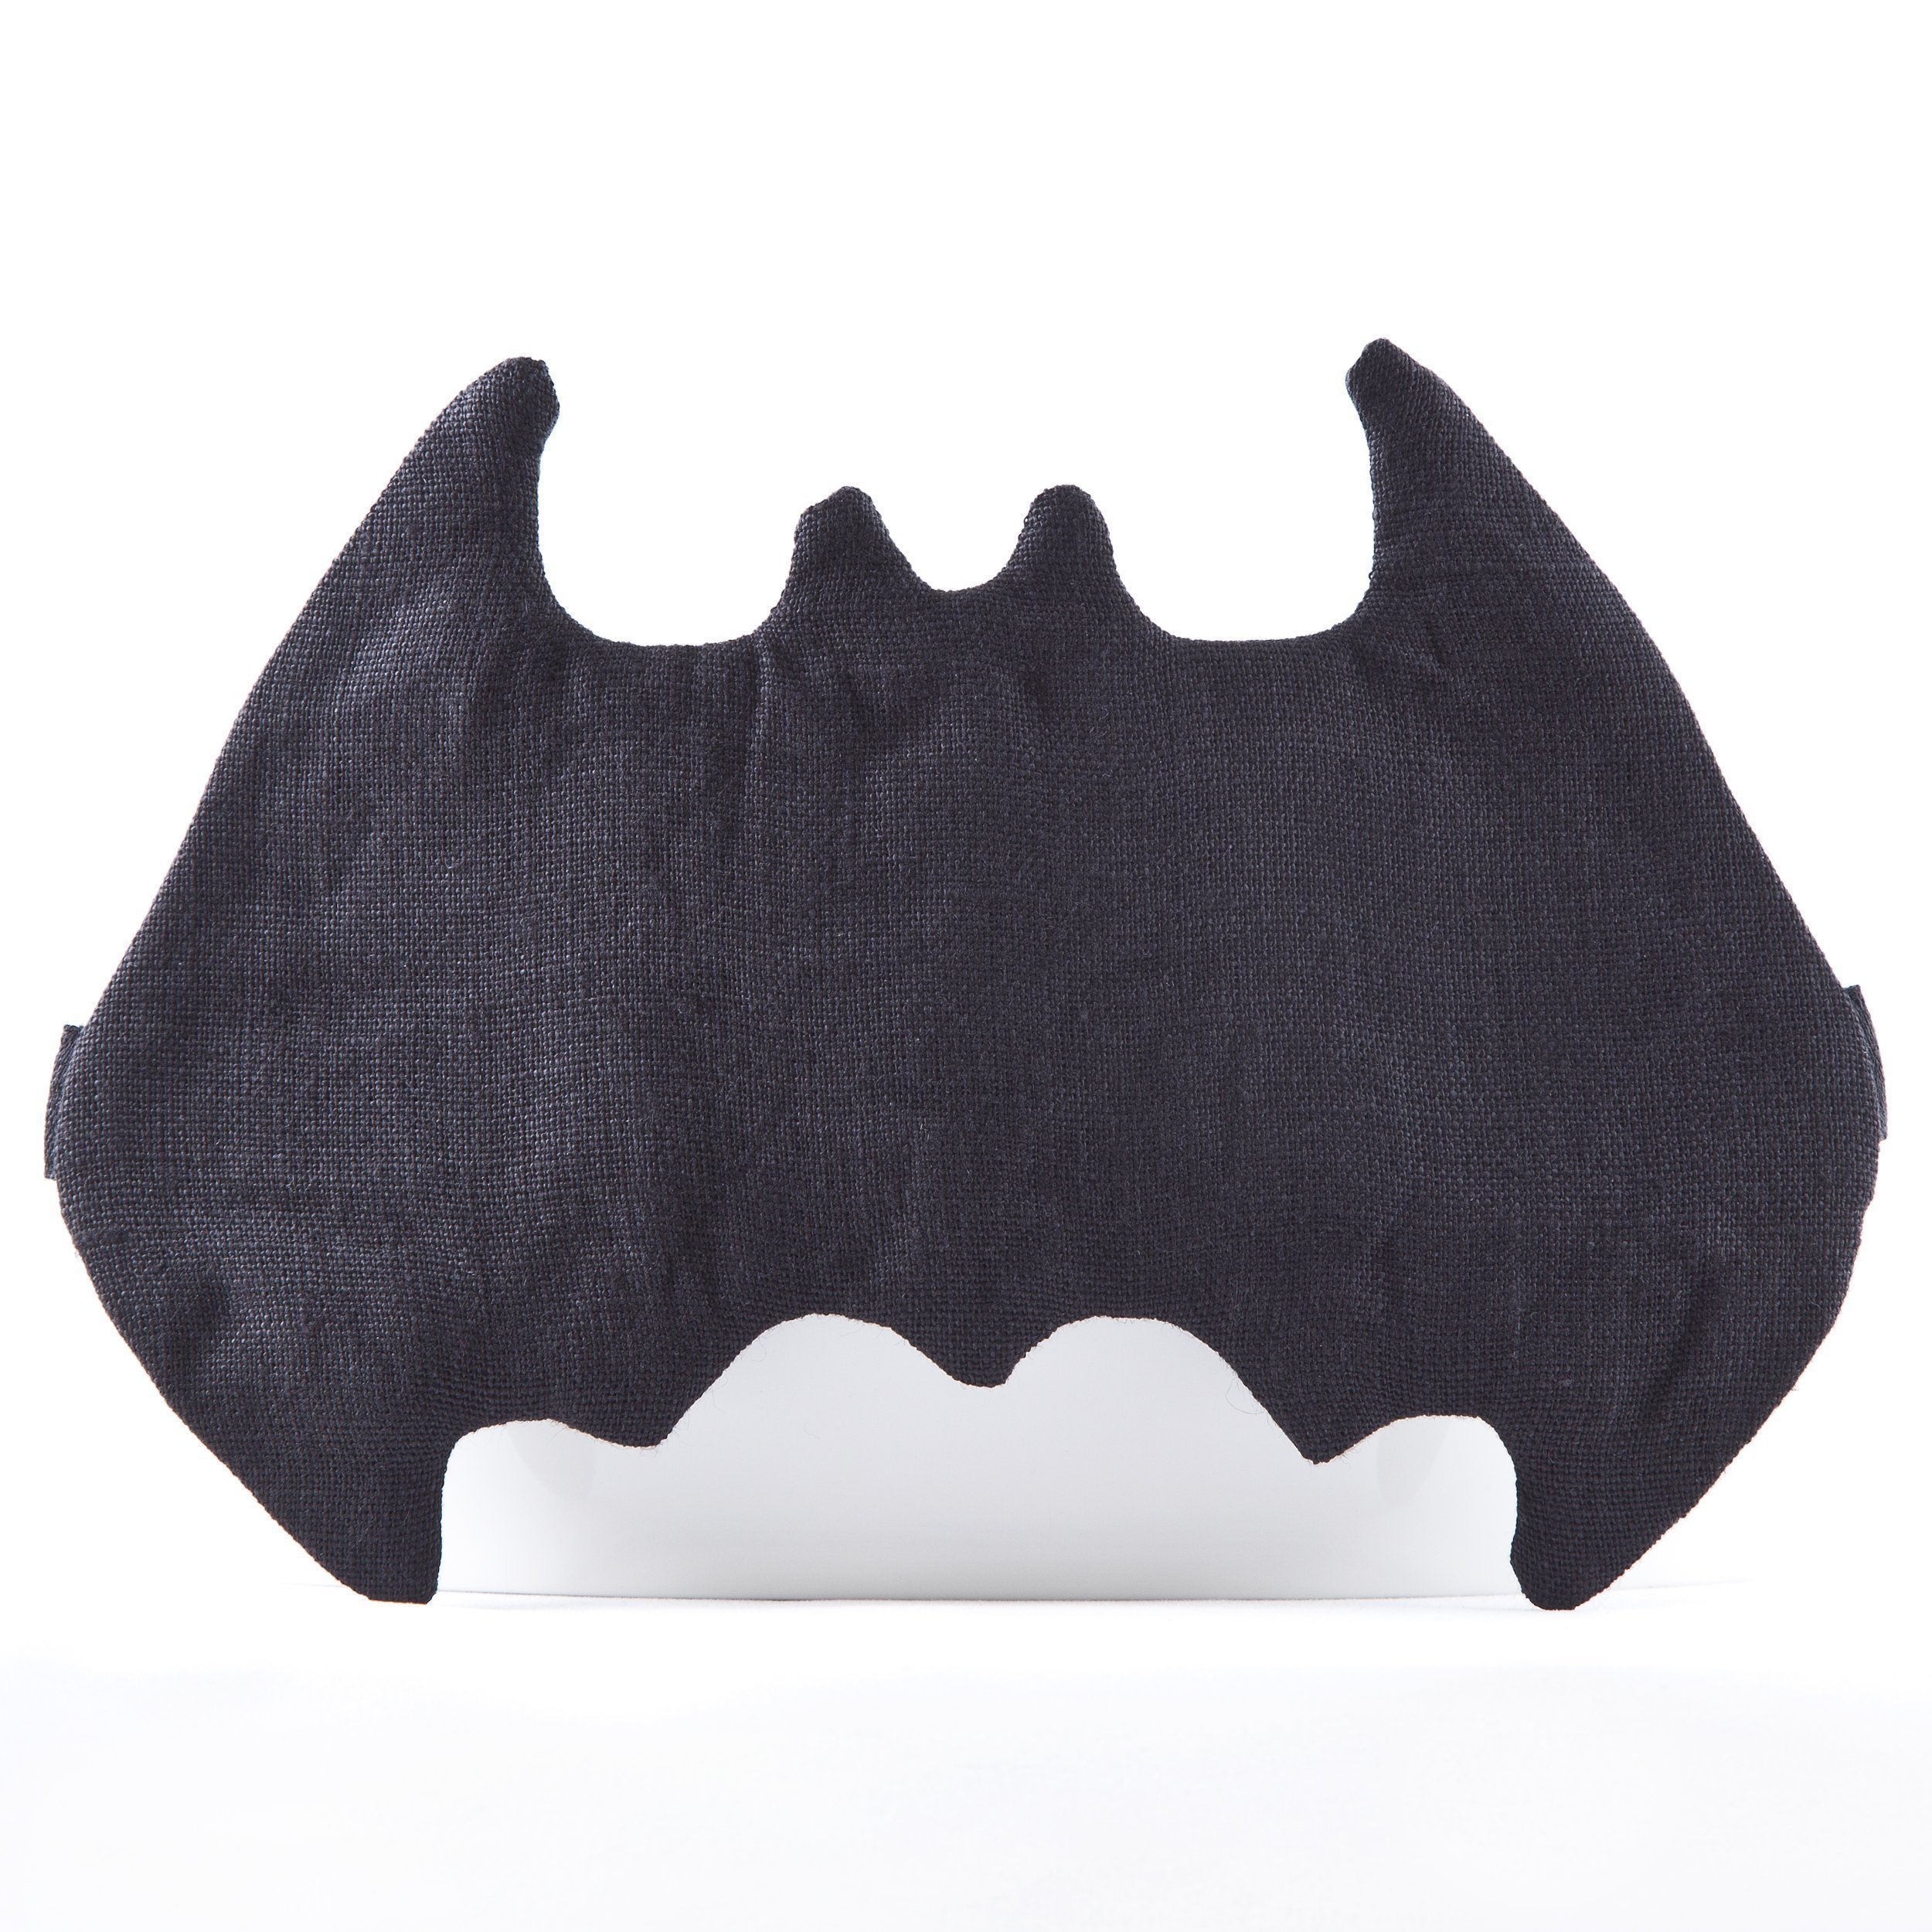 Linen Batman Sleep Mask, Super Hero Mask, Cute Gift for Her, Sleepover Party Supplies, Black Mask, Gift Ideas for Mom Birthday, Batman Mask